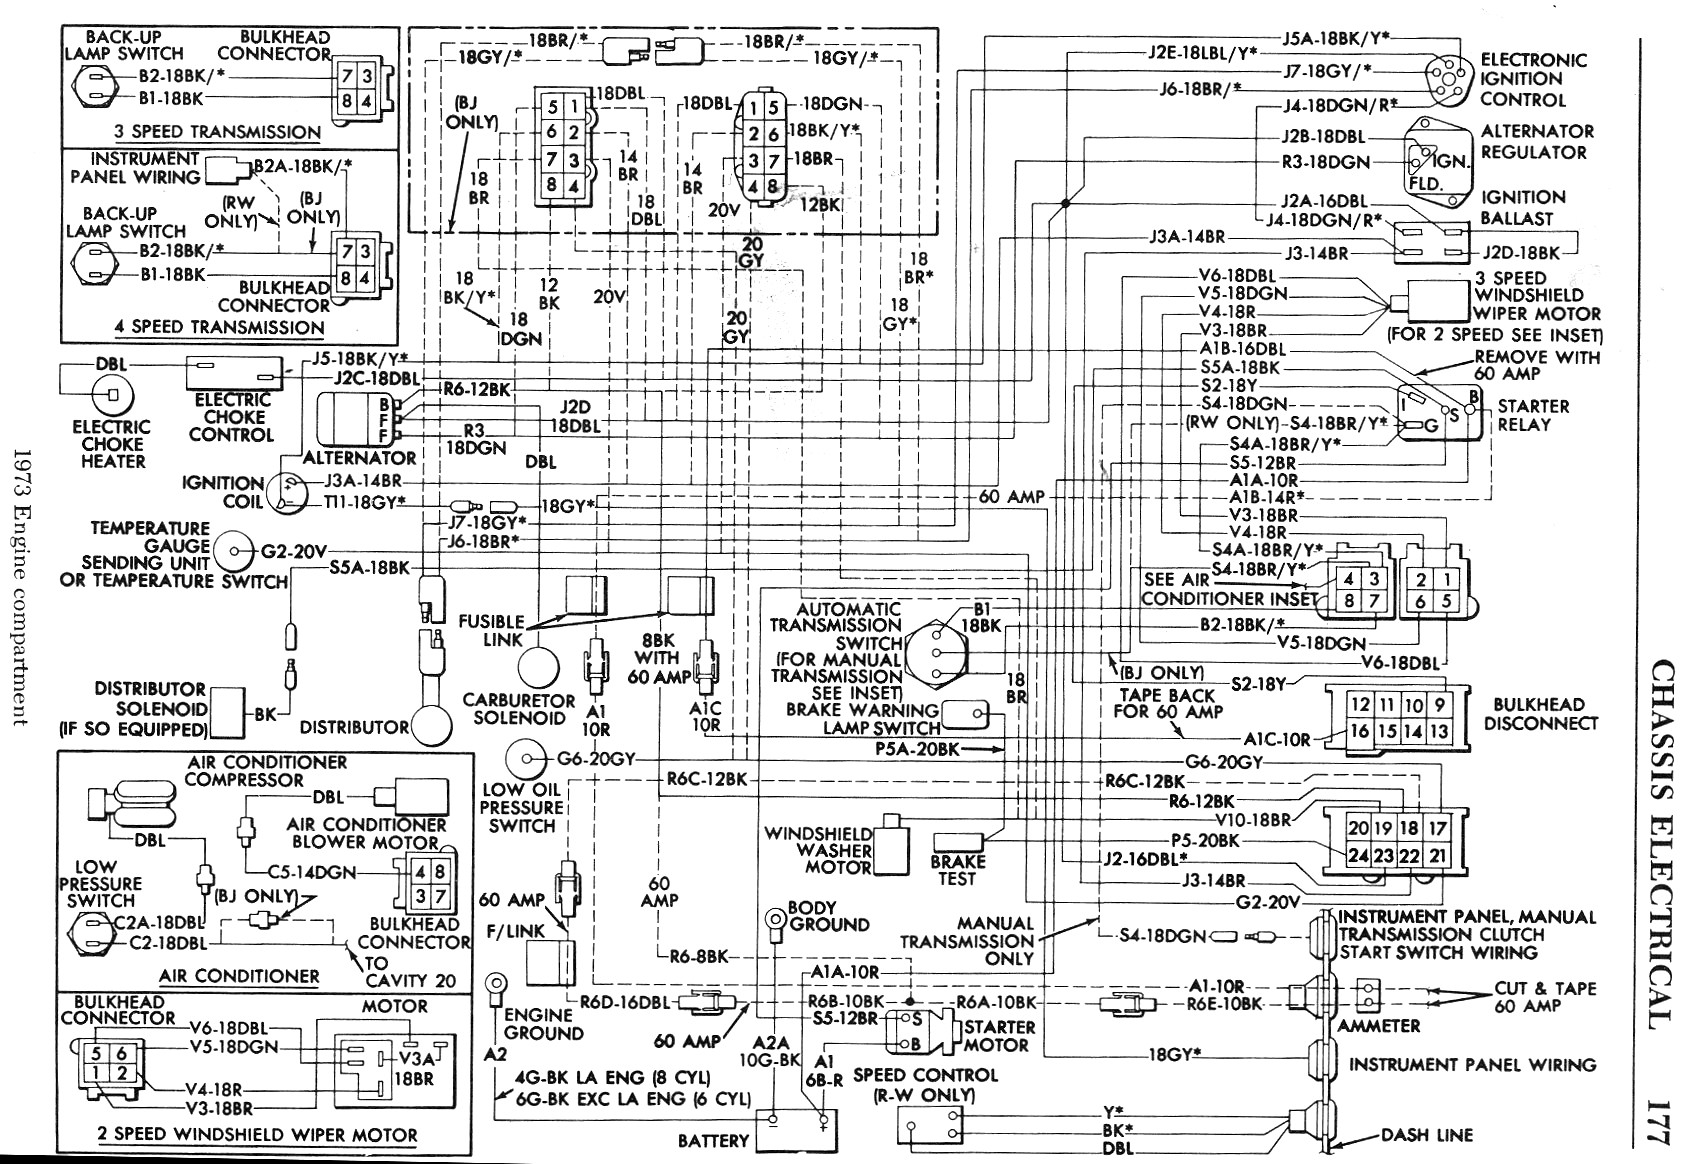 5098823 73B BodyEngineCompartmentWiringDiagram mopar wiring diagram powerflex 755 wiring diagrams \u2022 free wiring  at crackthecode.co